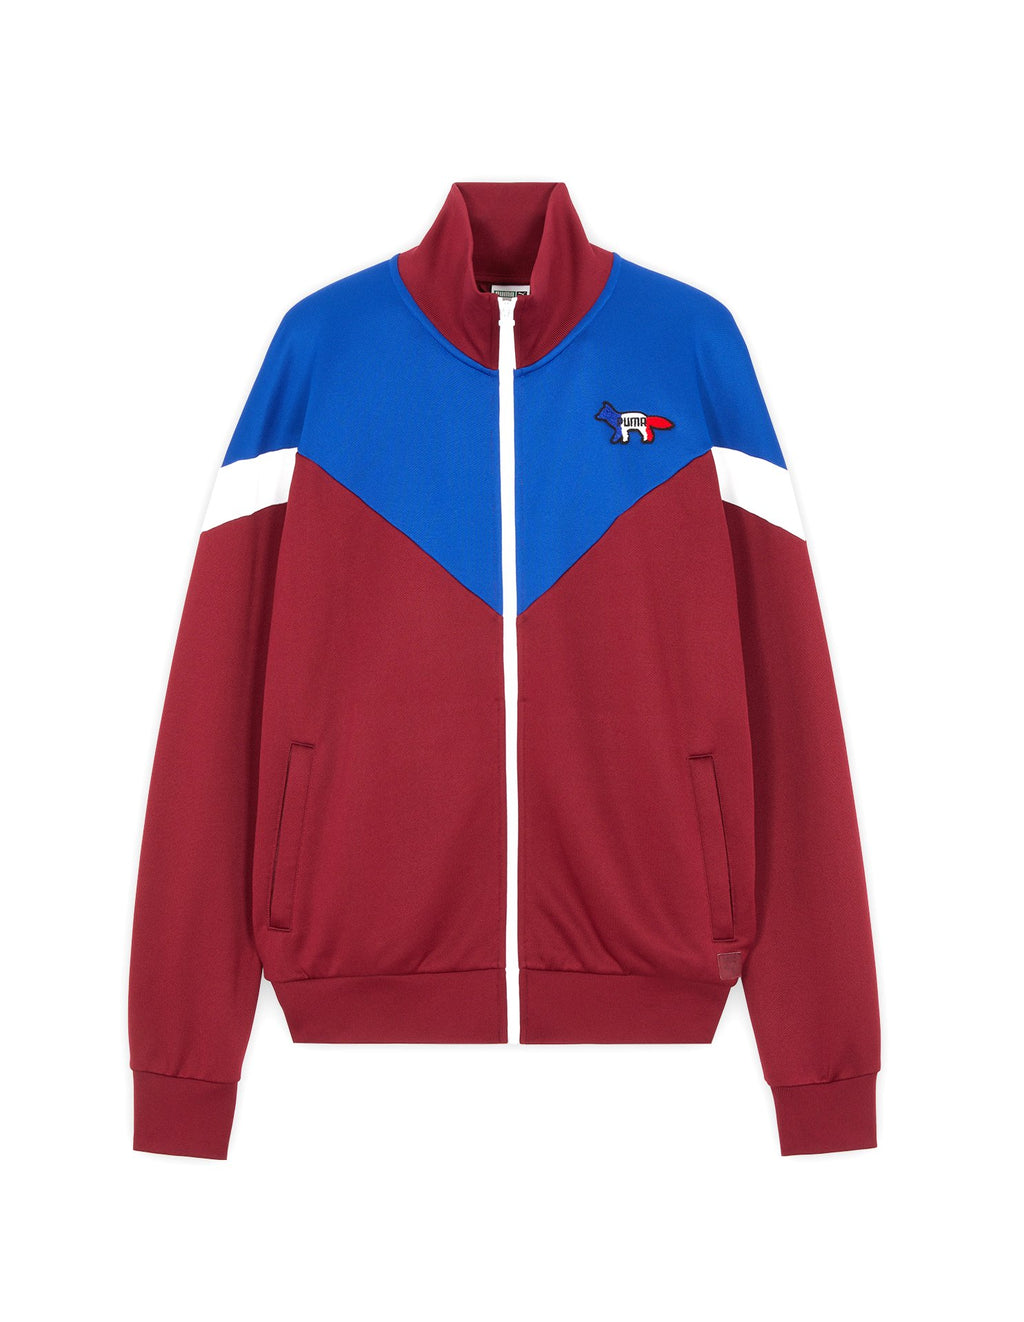 Red & Blue Maison Kitsune x Puma Track Top